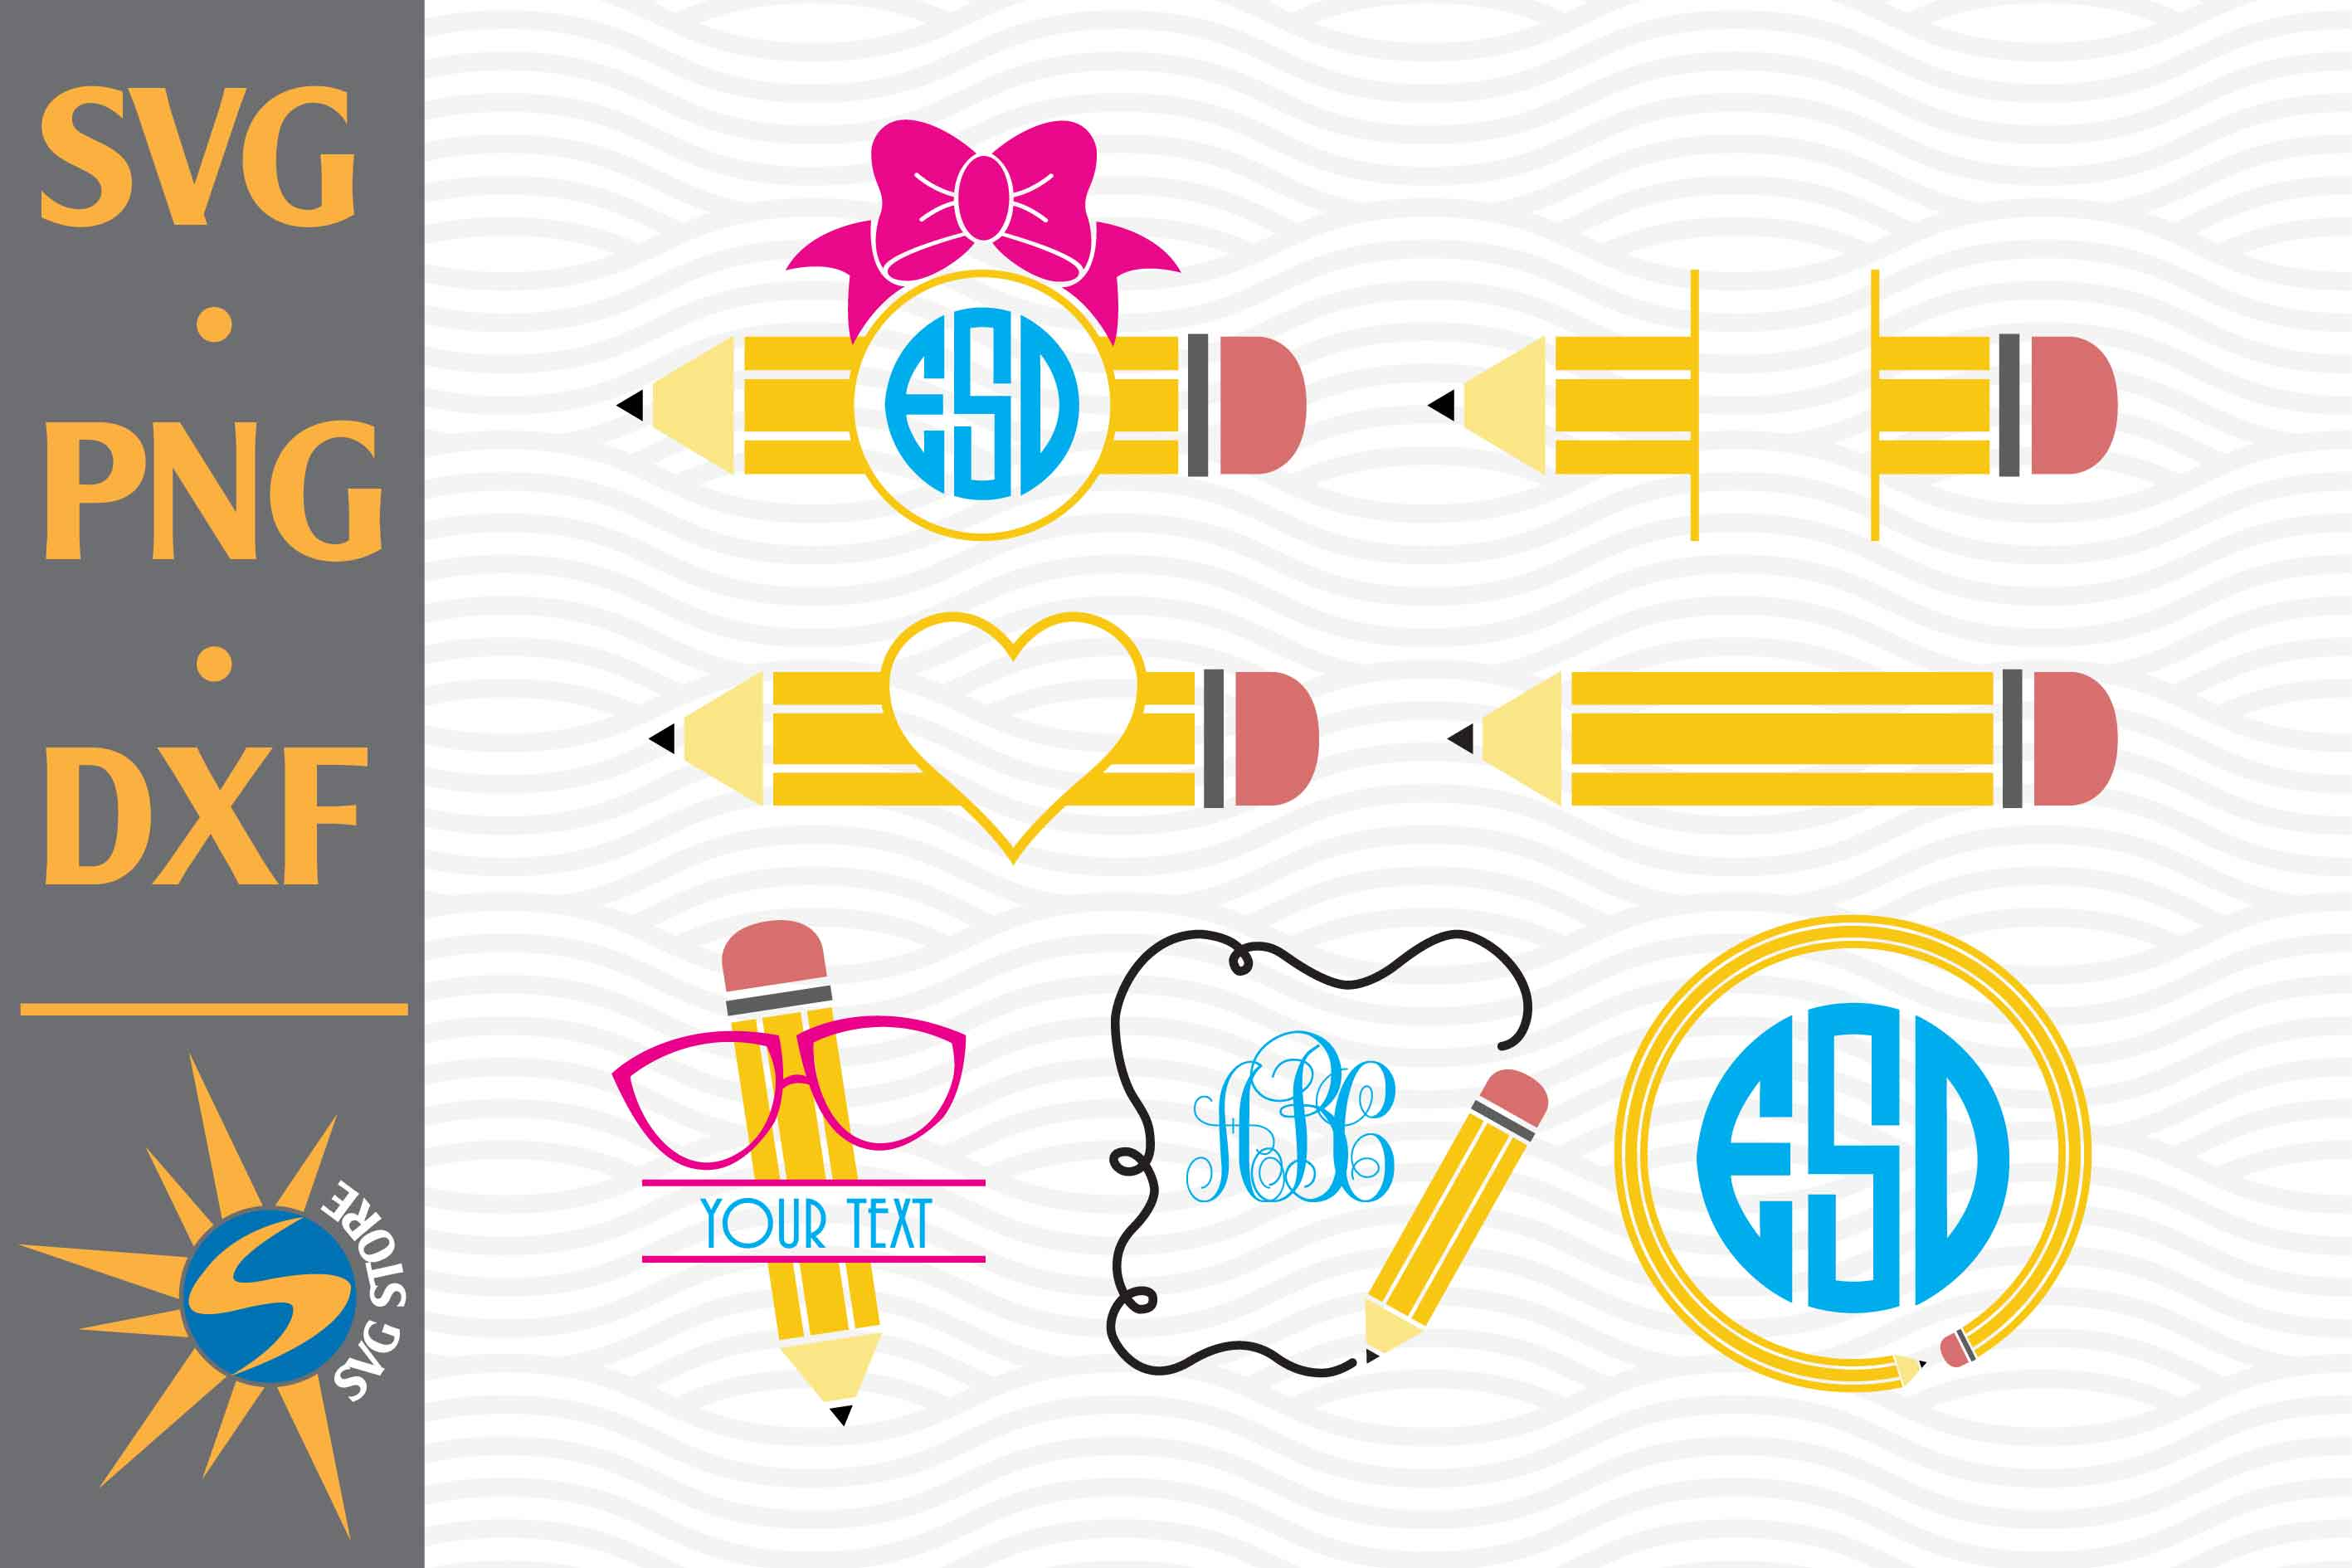 Svg File Svg Pencil Free Svg Cut Files Create Your Diy Projects Using Your Cricut Explore Silhouette And More The Free Cut Files Include Svg Dxf Eps And Png Files